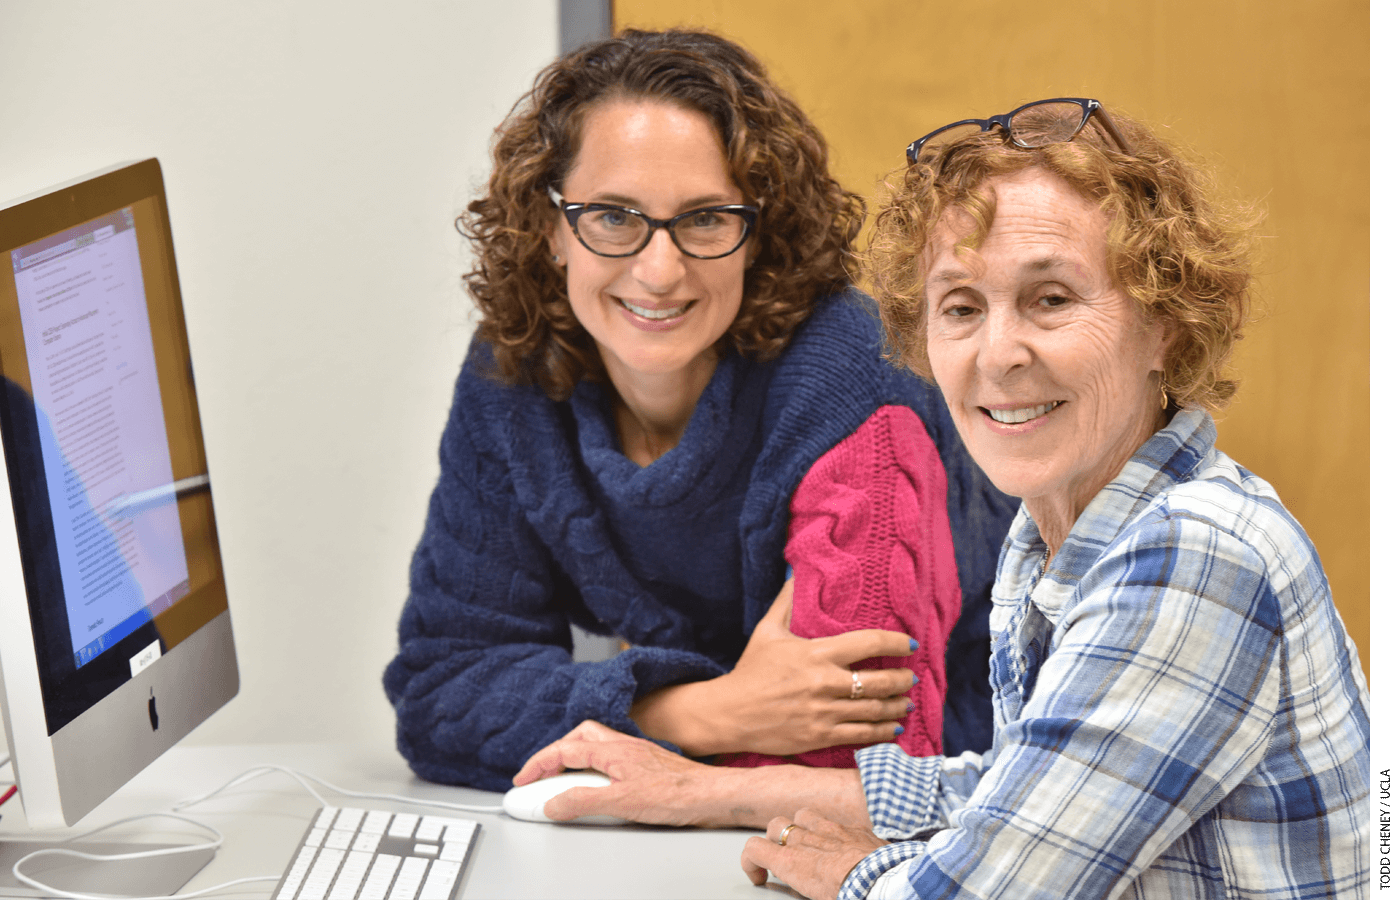 Julie Flapan (left) and Jane Margolis caution against schools' adding computer-science class at the expense of other courses.